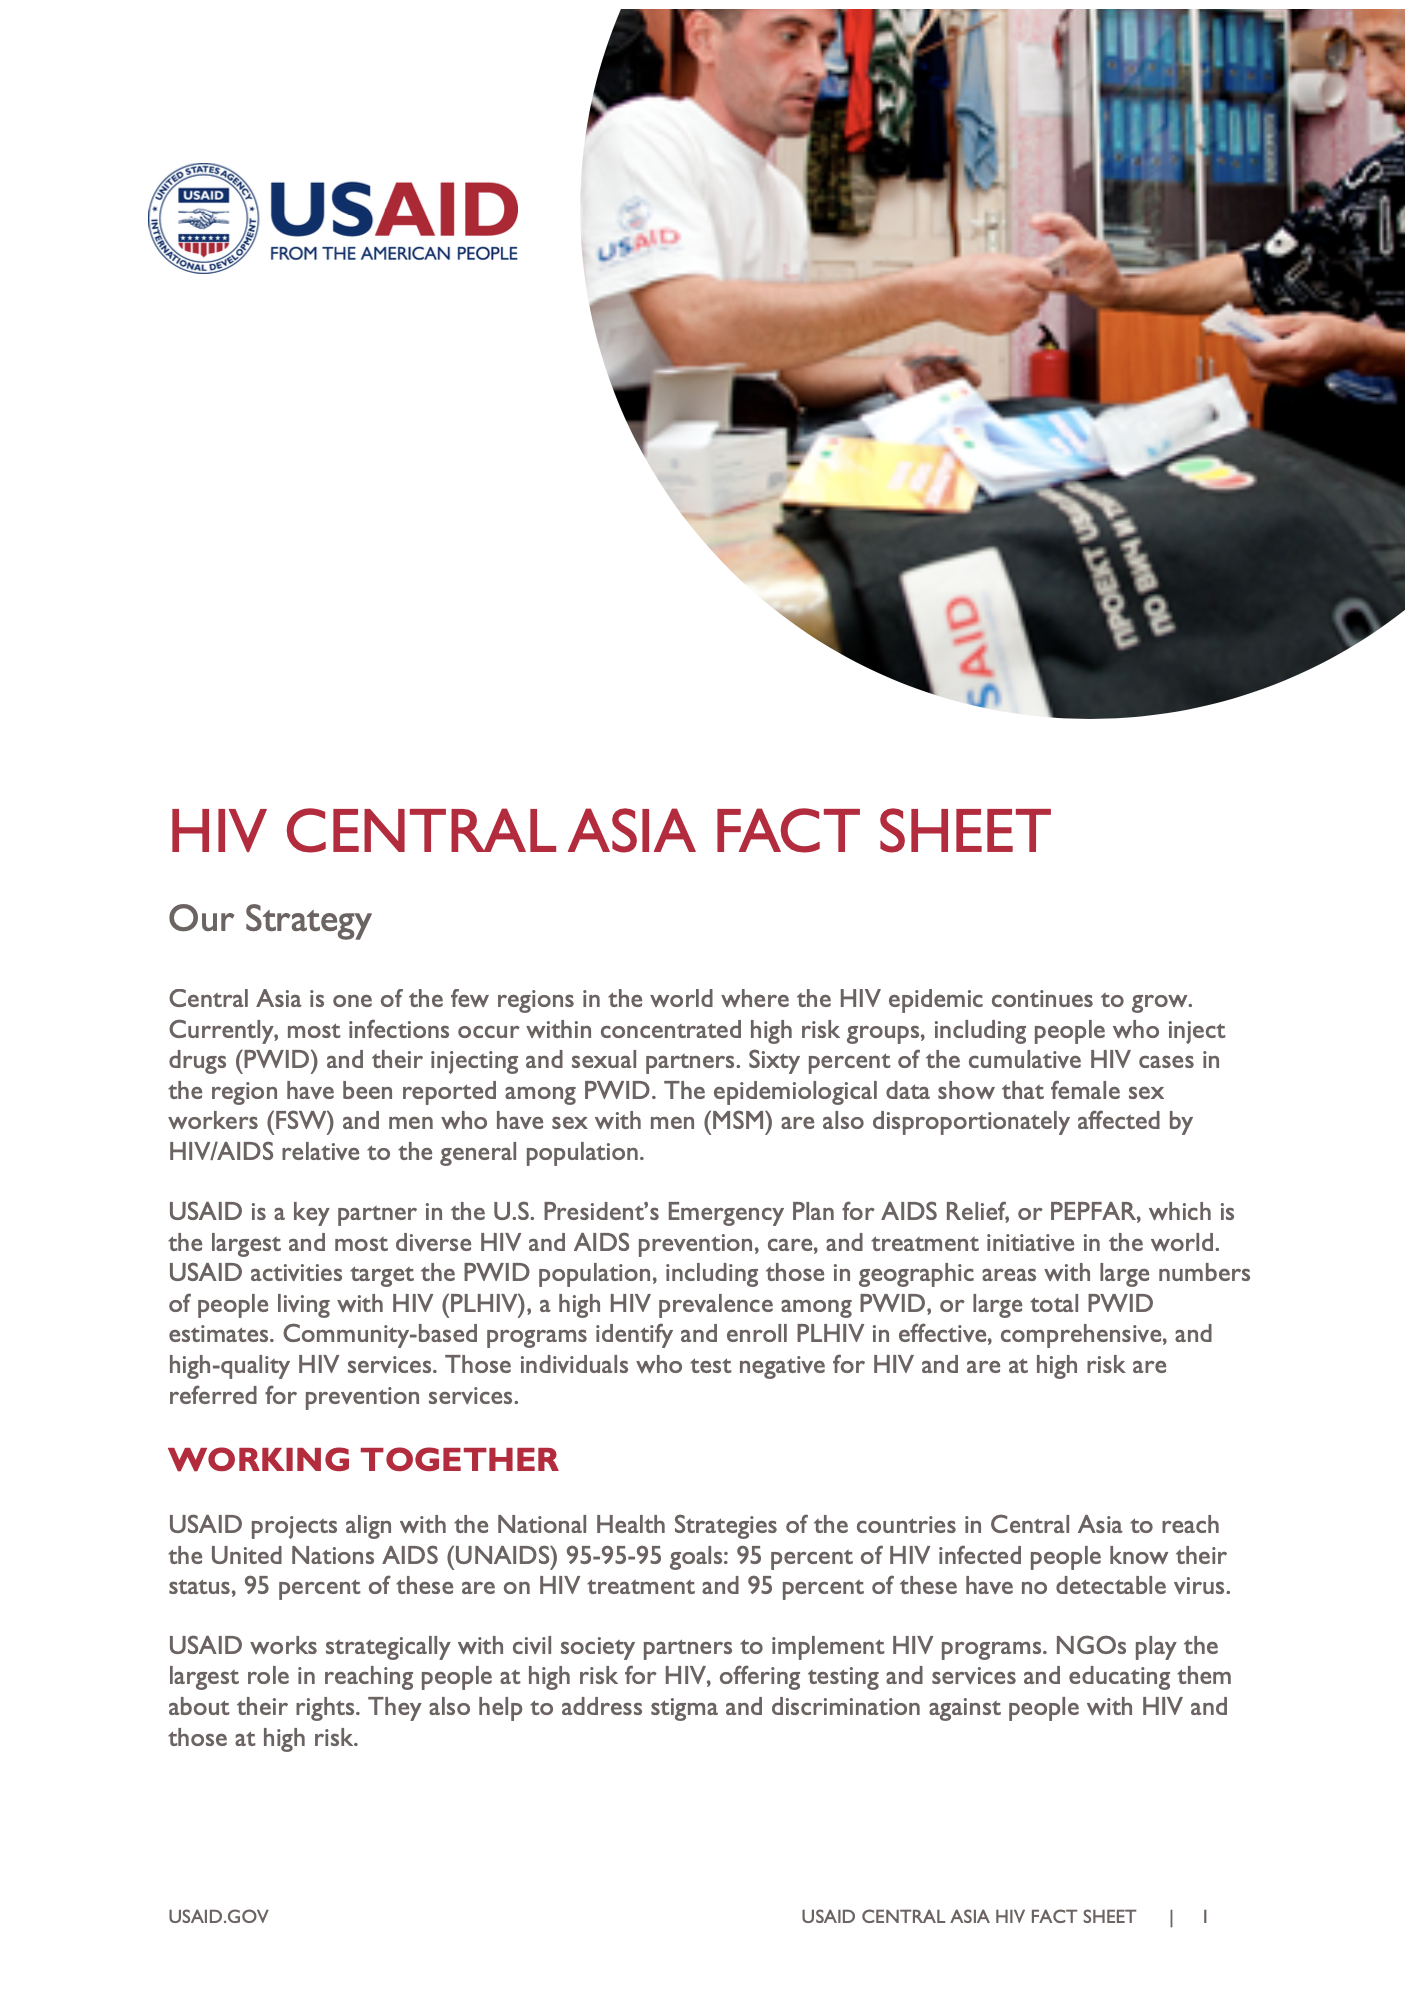 HIV Central Asia Fact Sheet